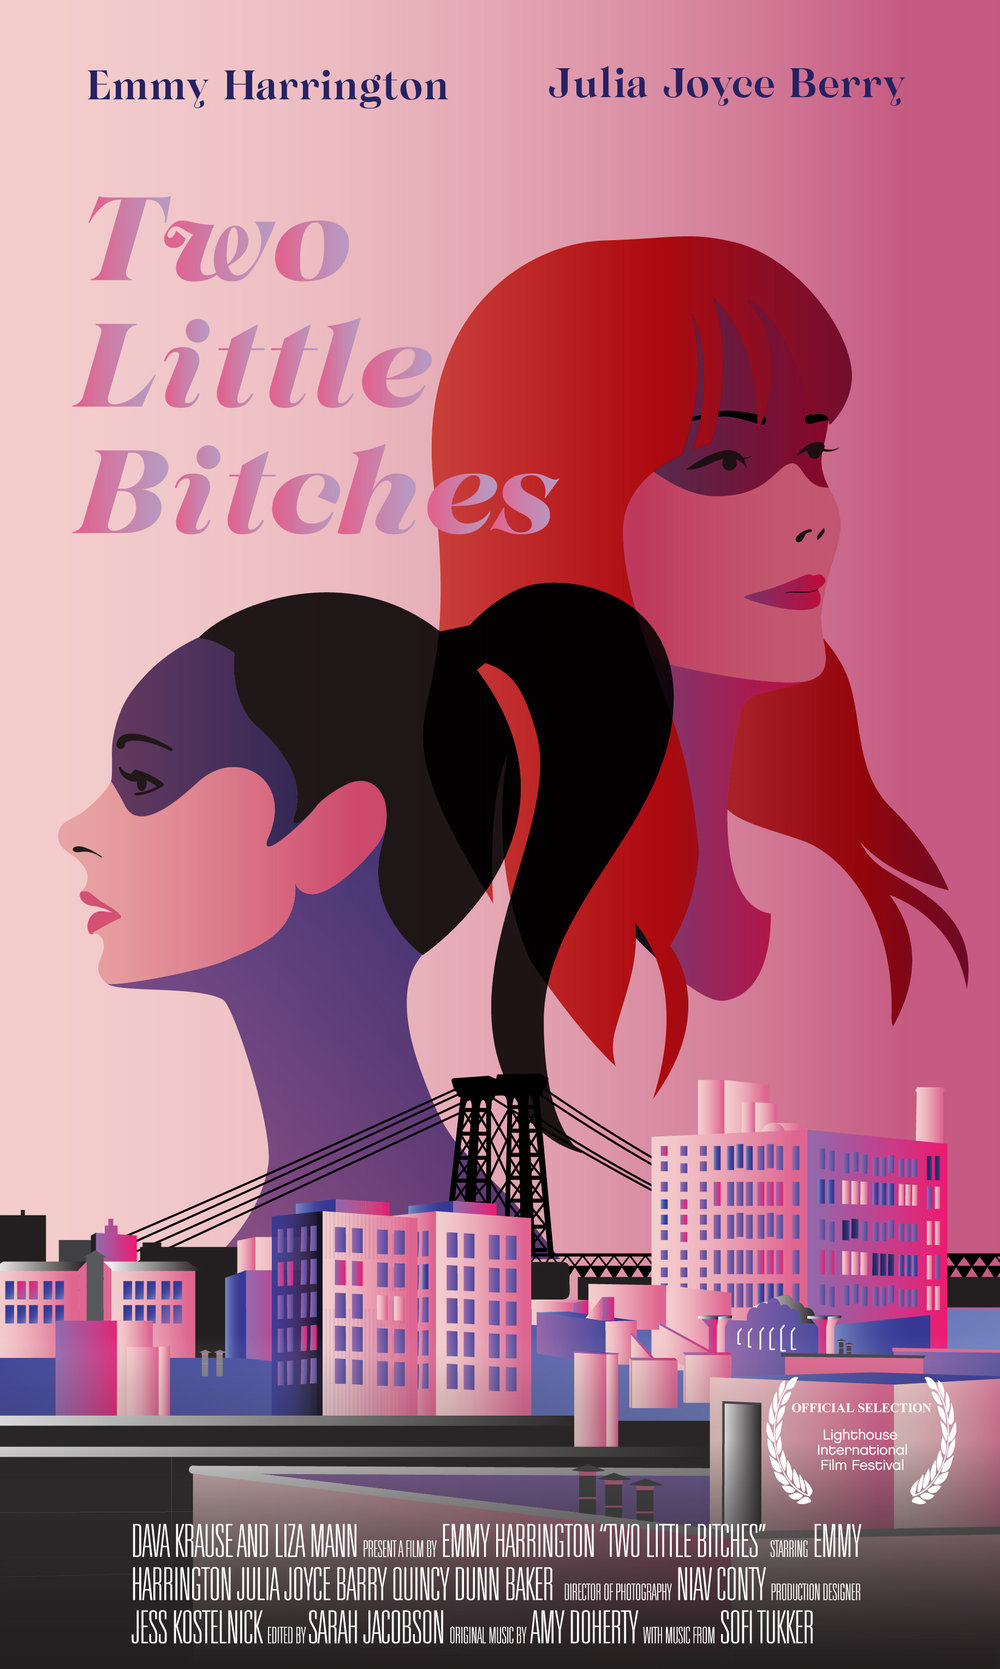 TWO LITTLE BI*#HES - I wrote the screenplay for this feature length film. I also directed the film which follows two sisters over the course of 72 hours. We hope to address the larger issue of disparity of women to men in the film industry both behind and in front of the camera. Winner of Best Film and Best Director at the International Women's Film Festival in Los Angeles.Two little Bi*#hes r is a feature film shot by an all female crew in Brooklyn which has completed principal photography. It is currently in post production and is expected to reach audiences by 2017.